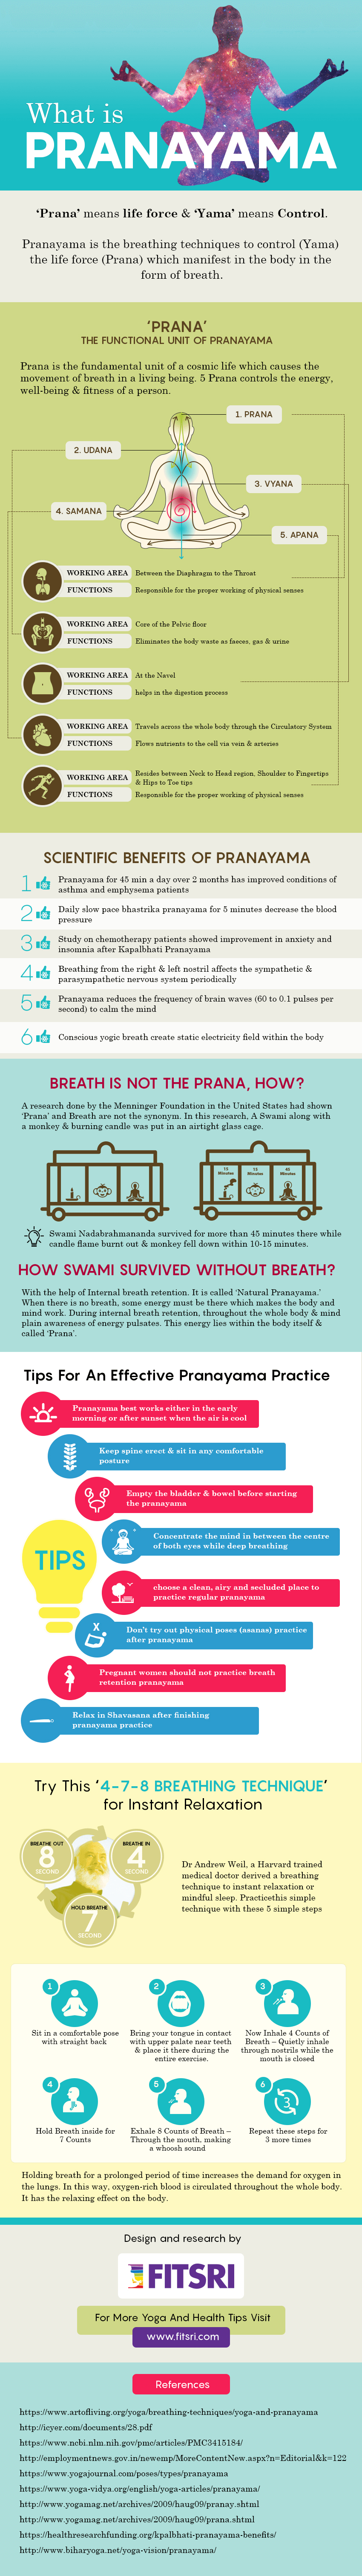 What-is-pranayama